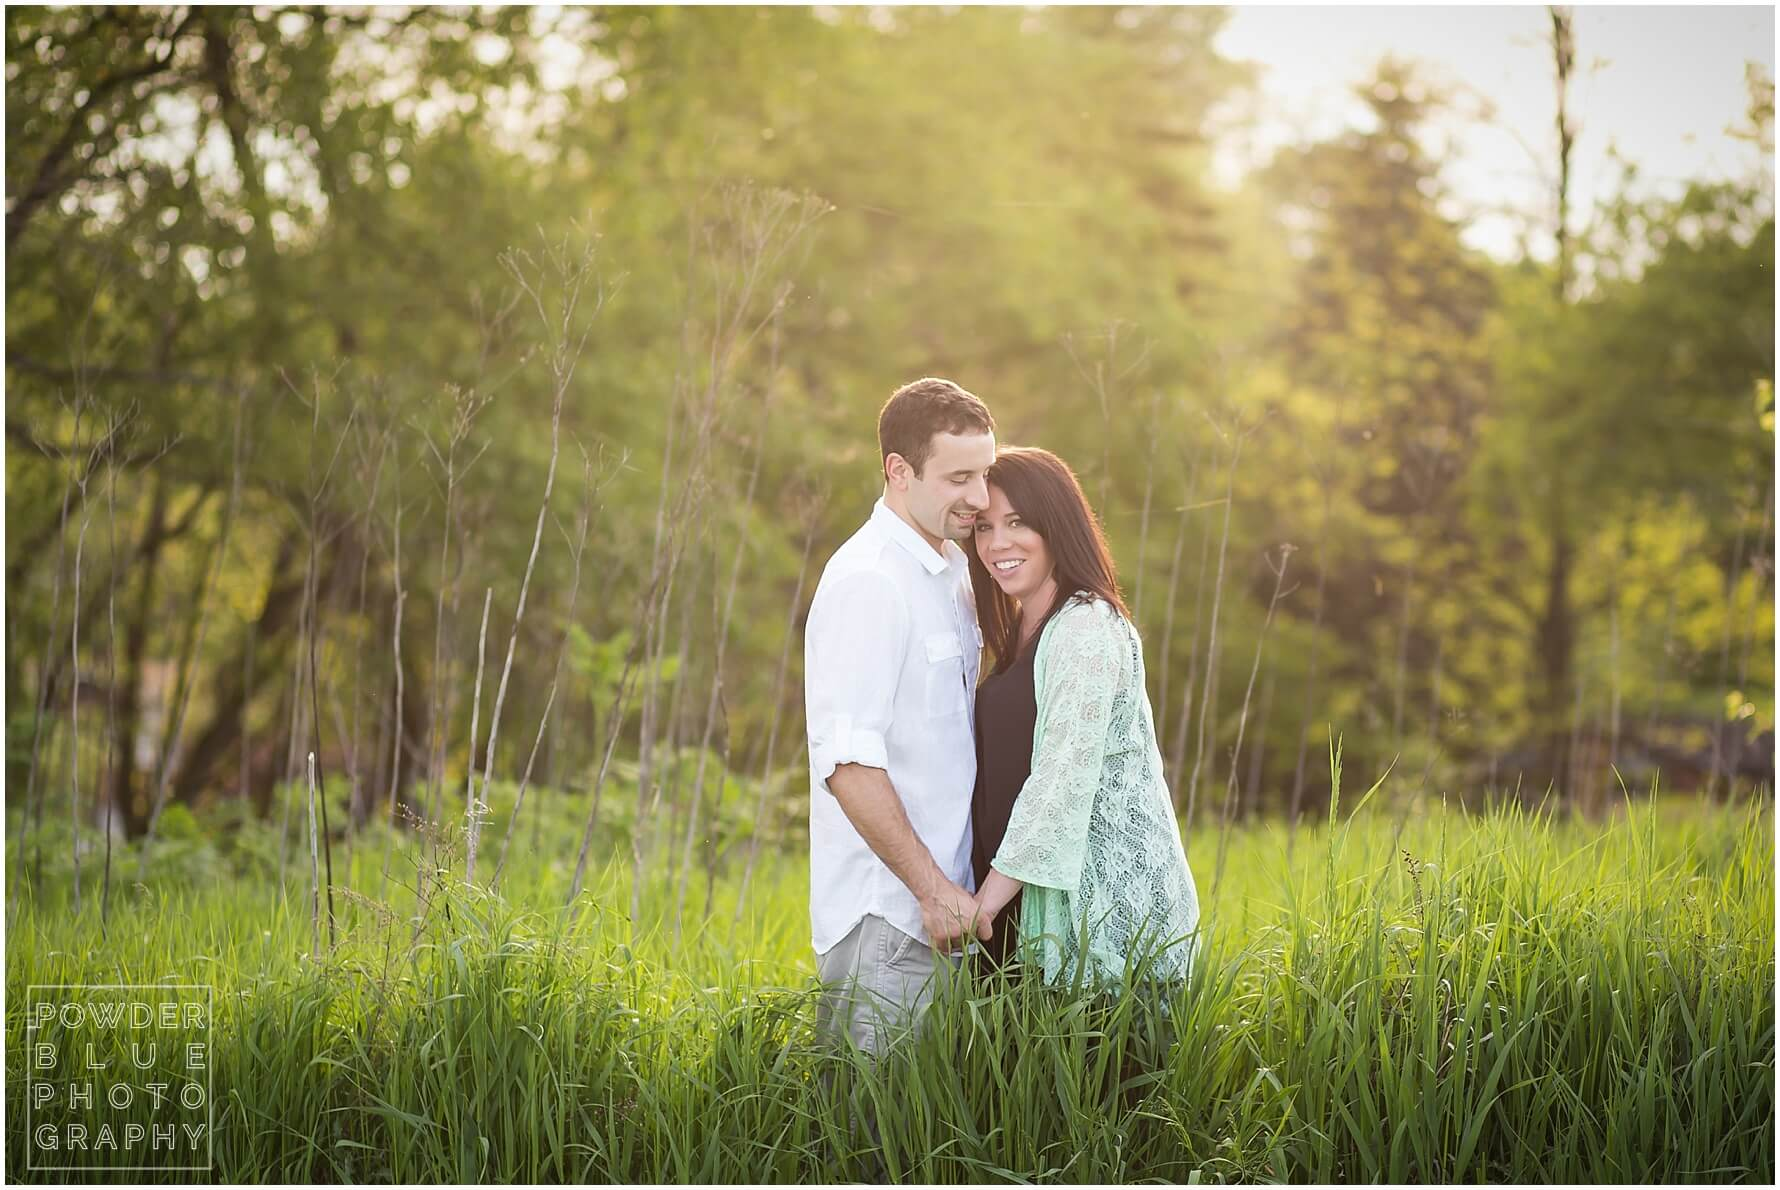 Brittany & Phil Maternity Session